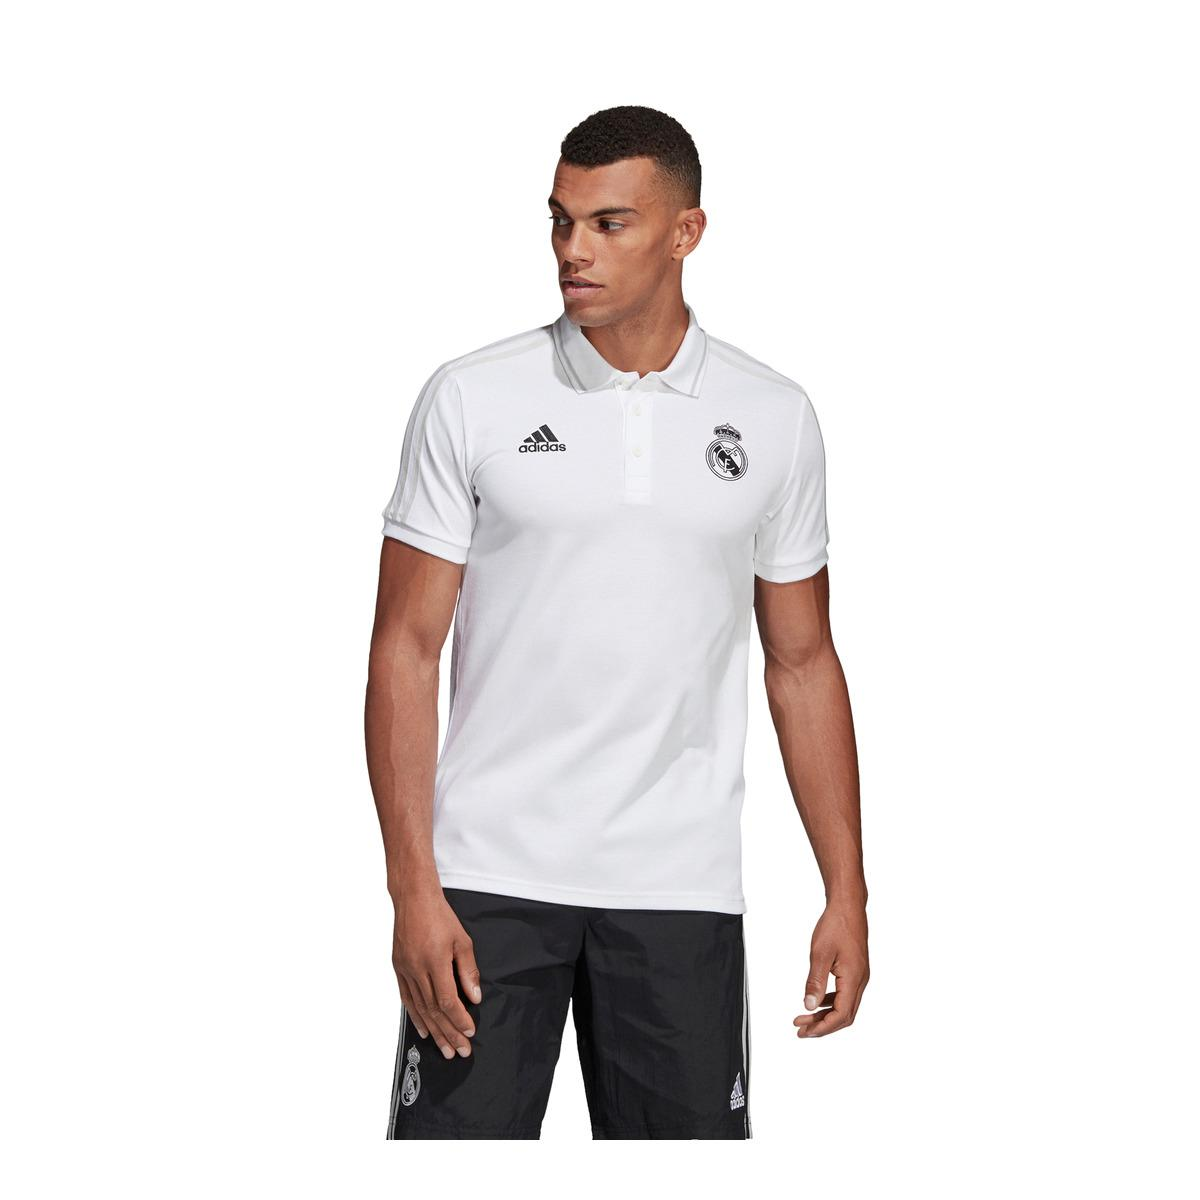 72c4c268b21 adidas Real Madrid Cf 2018-2019 Polo Shirt in White for Men - Lyst